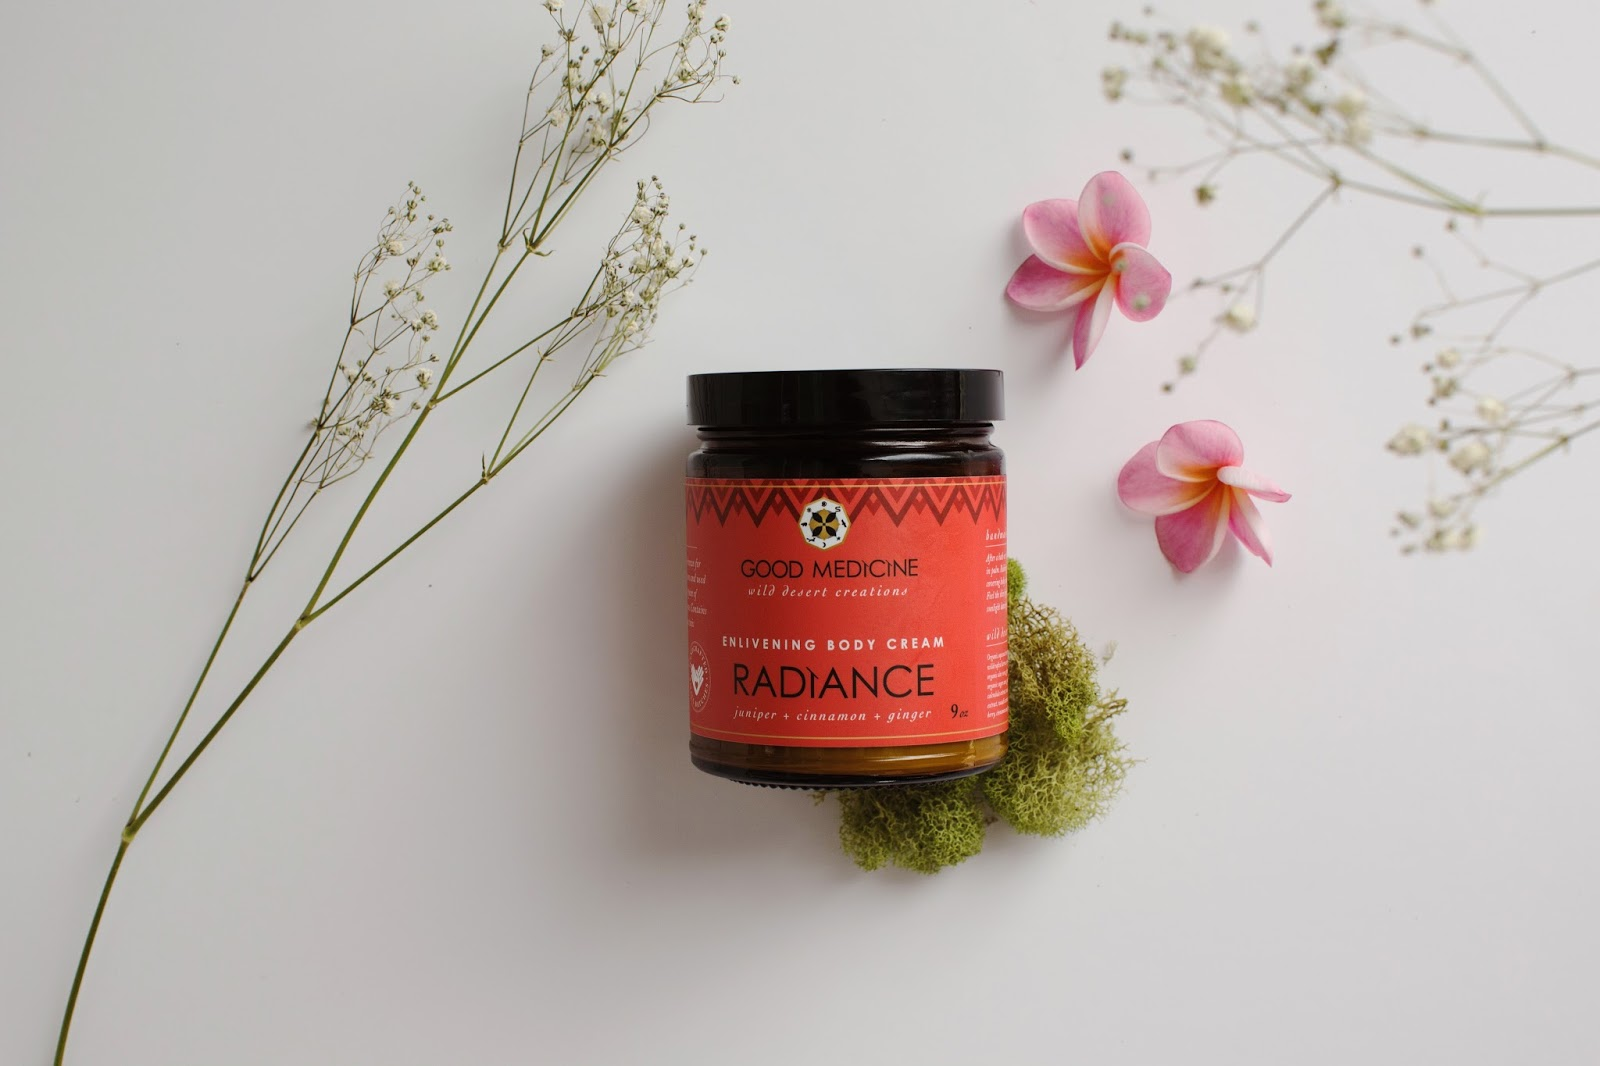 good medicine skincare radiance body cream review